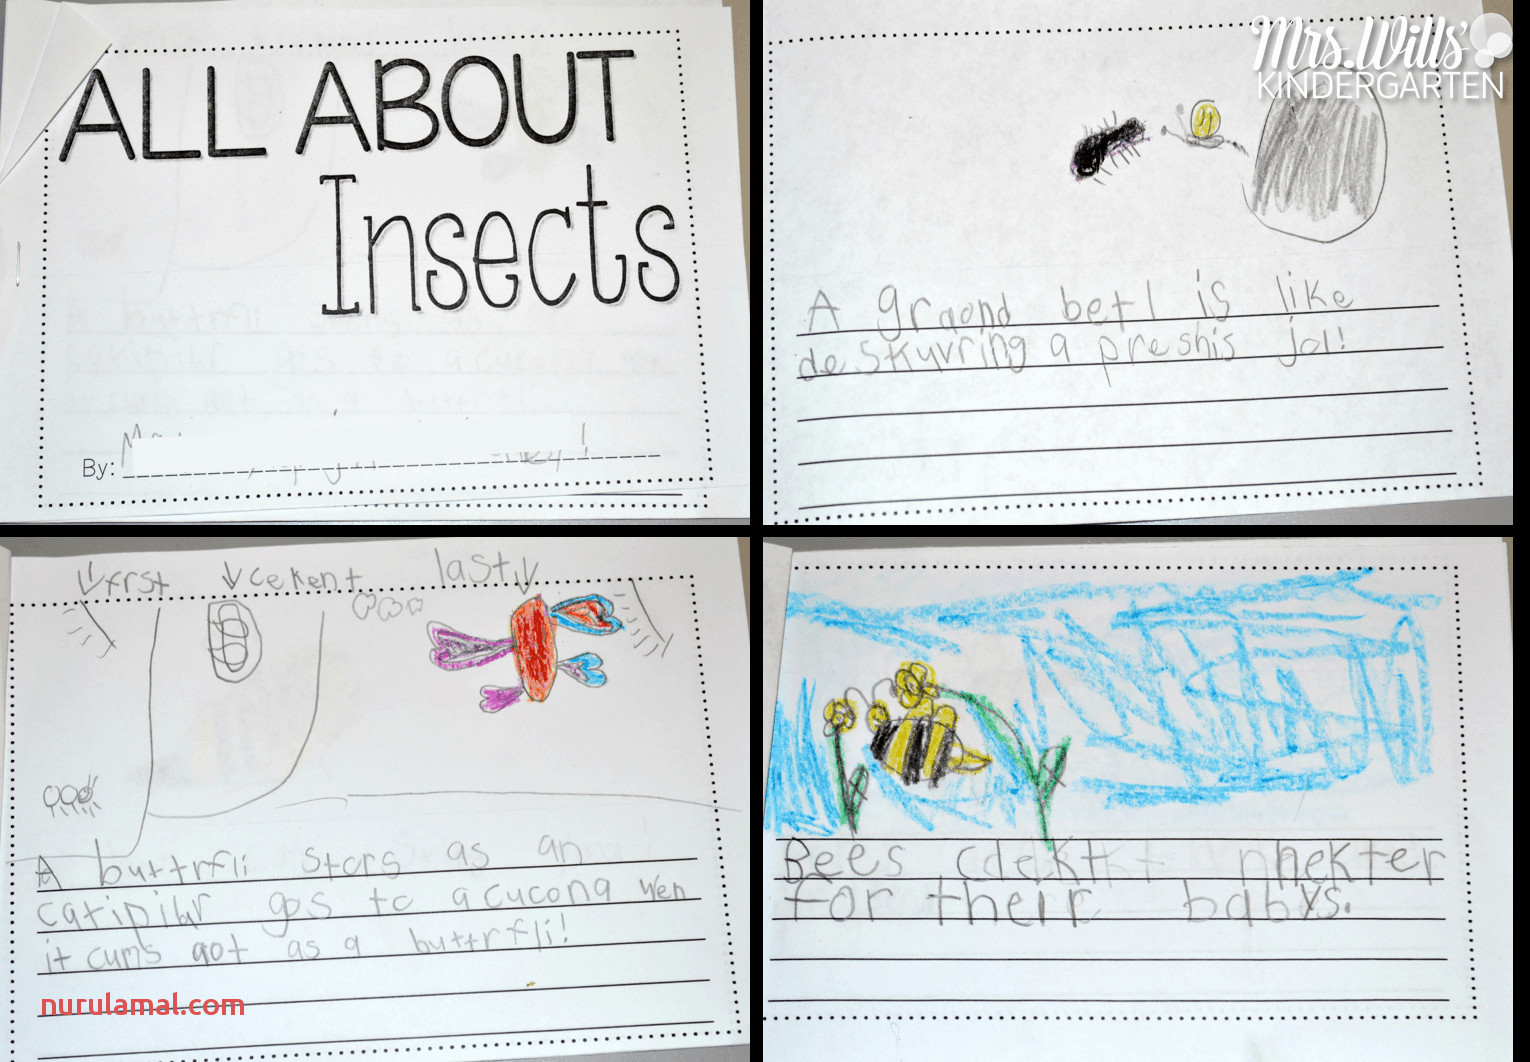 All About Insects 3